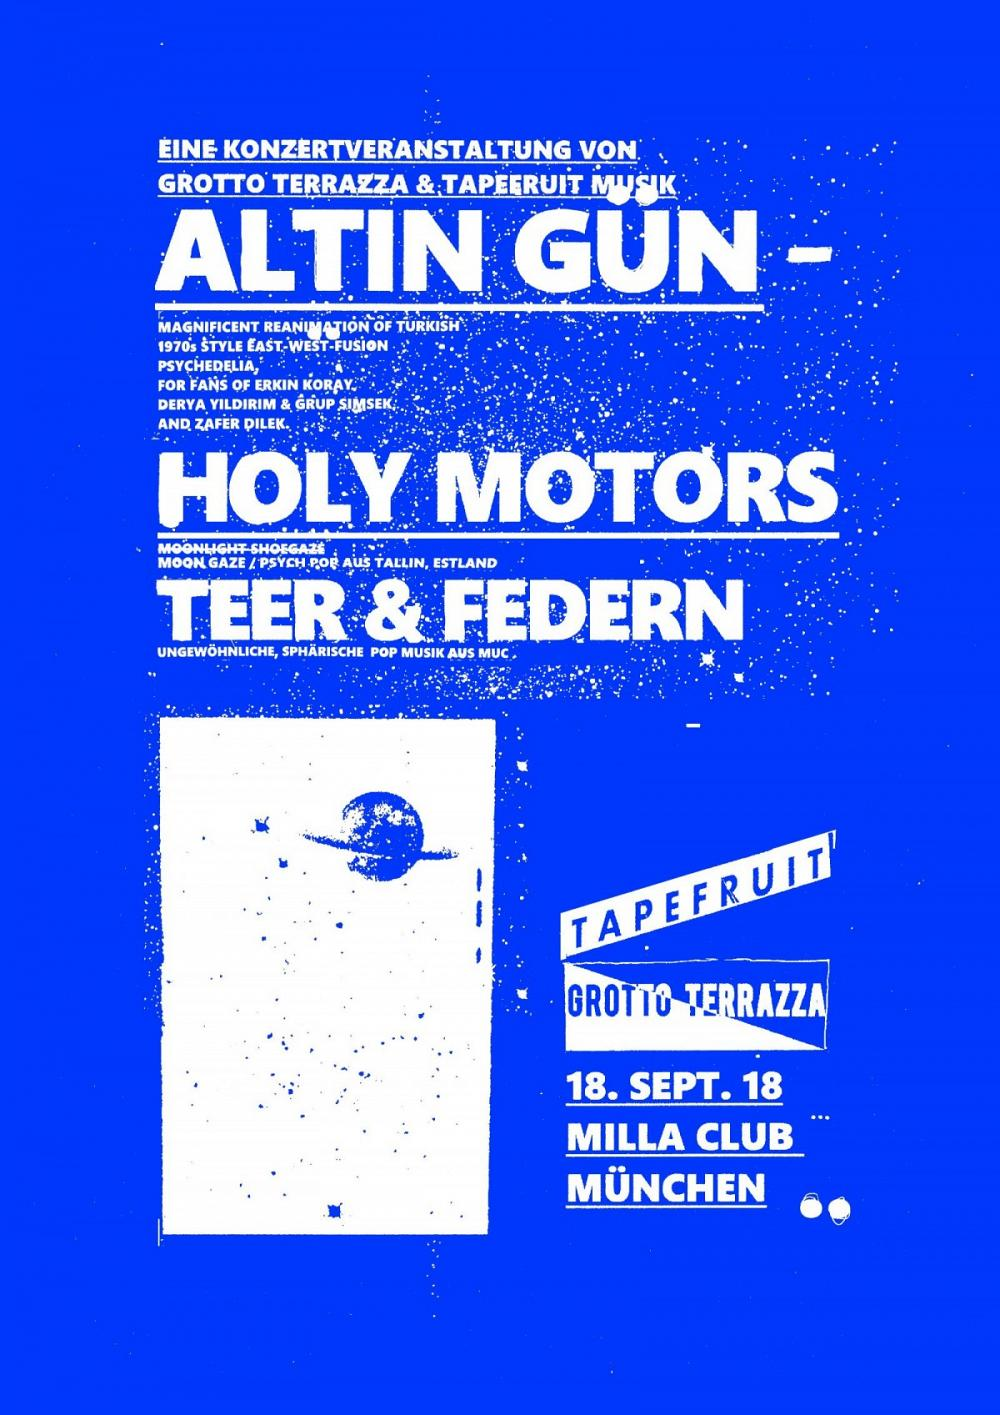 Tapefruit Konzert: Holy Motors + Teer & Federn | 18.09.2018 @ Milla Club